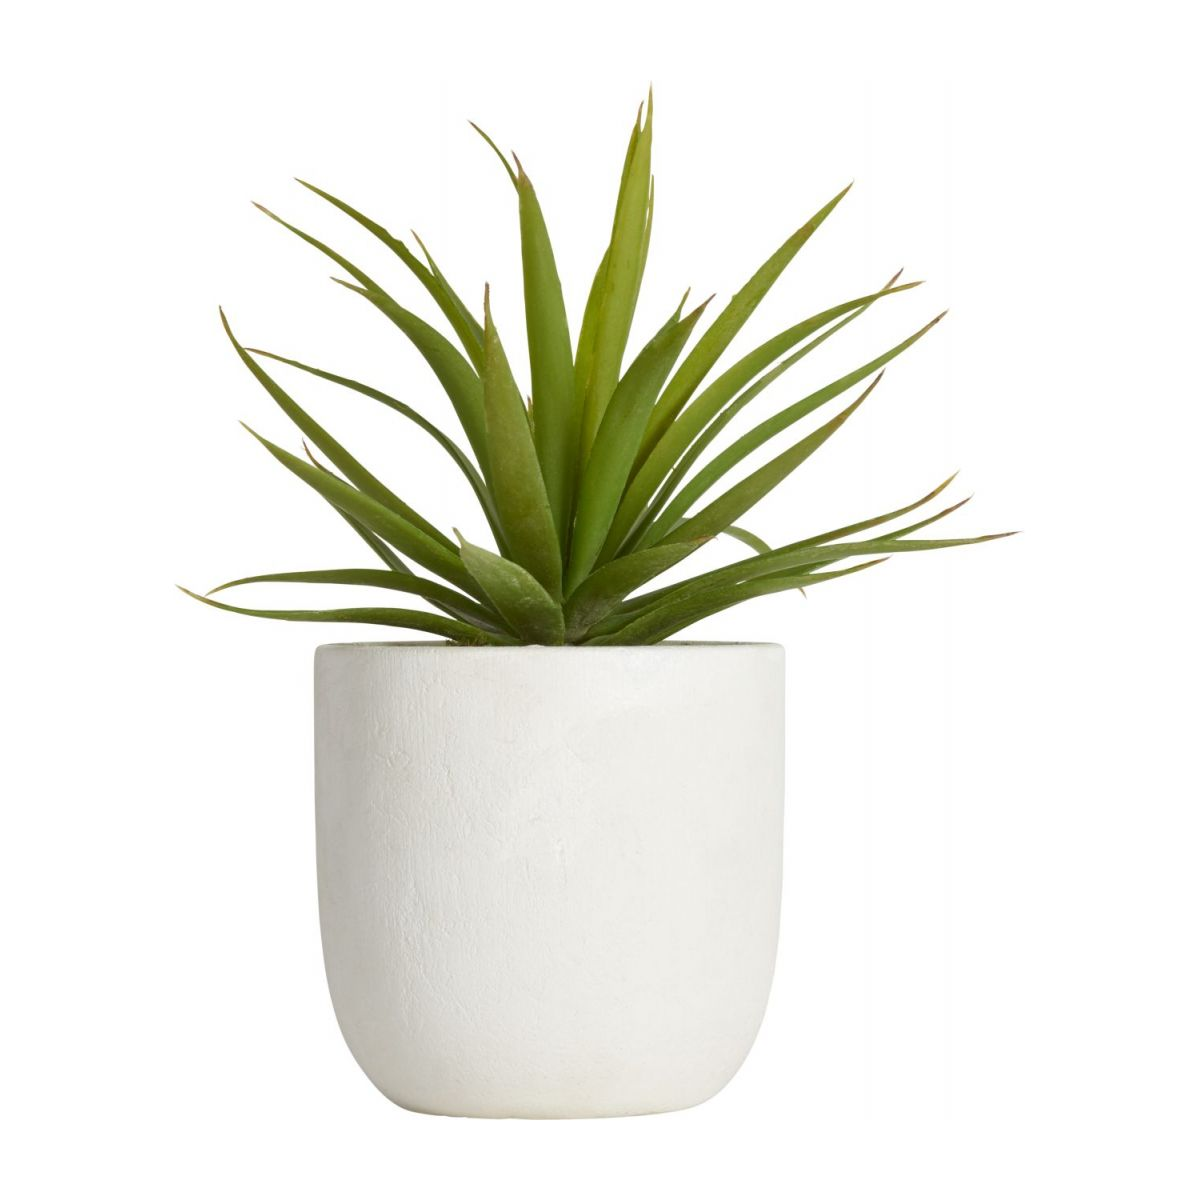 Artificial agave n°2